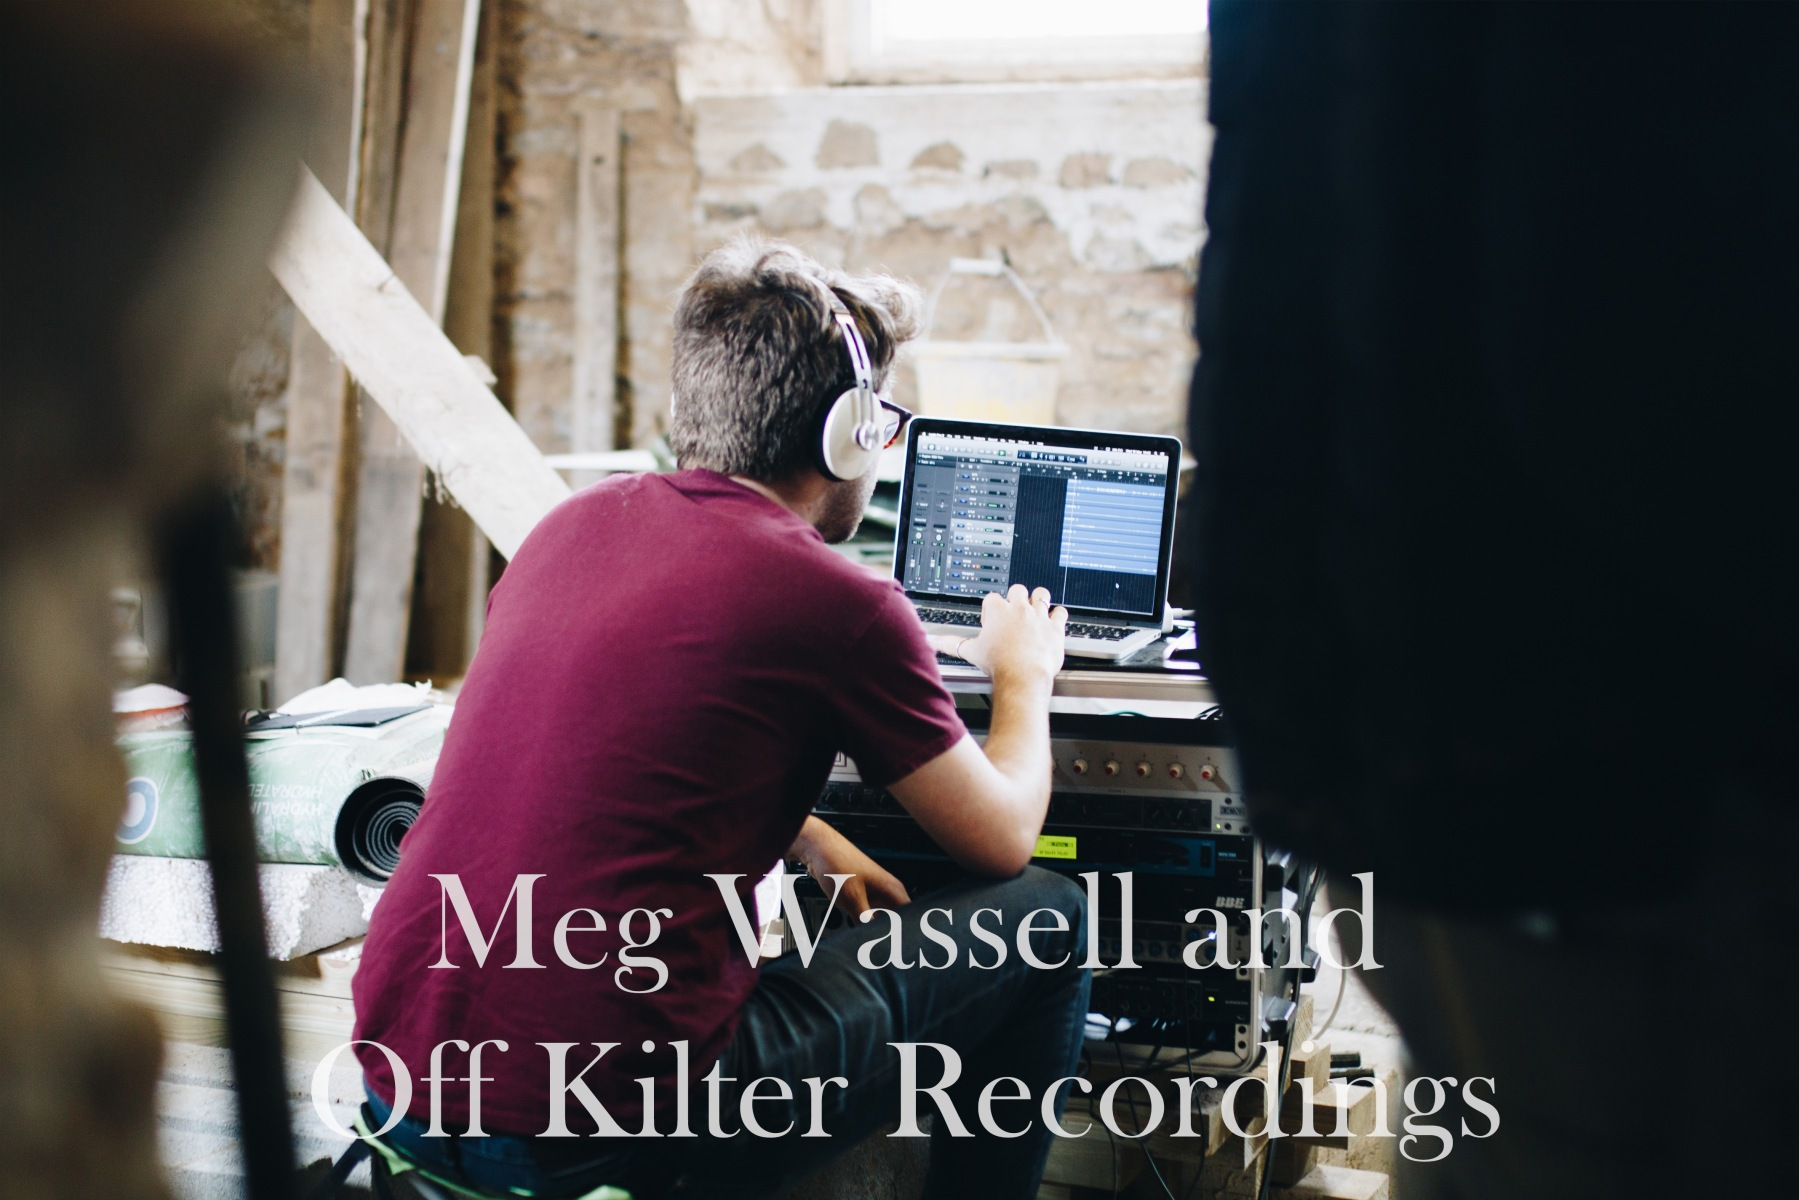 24. Meg Wassell and Off Kilter Recordings